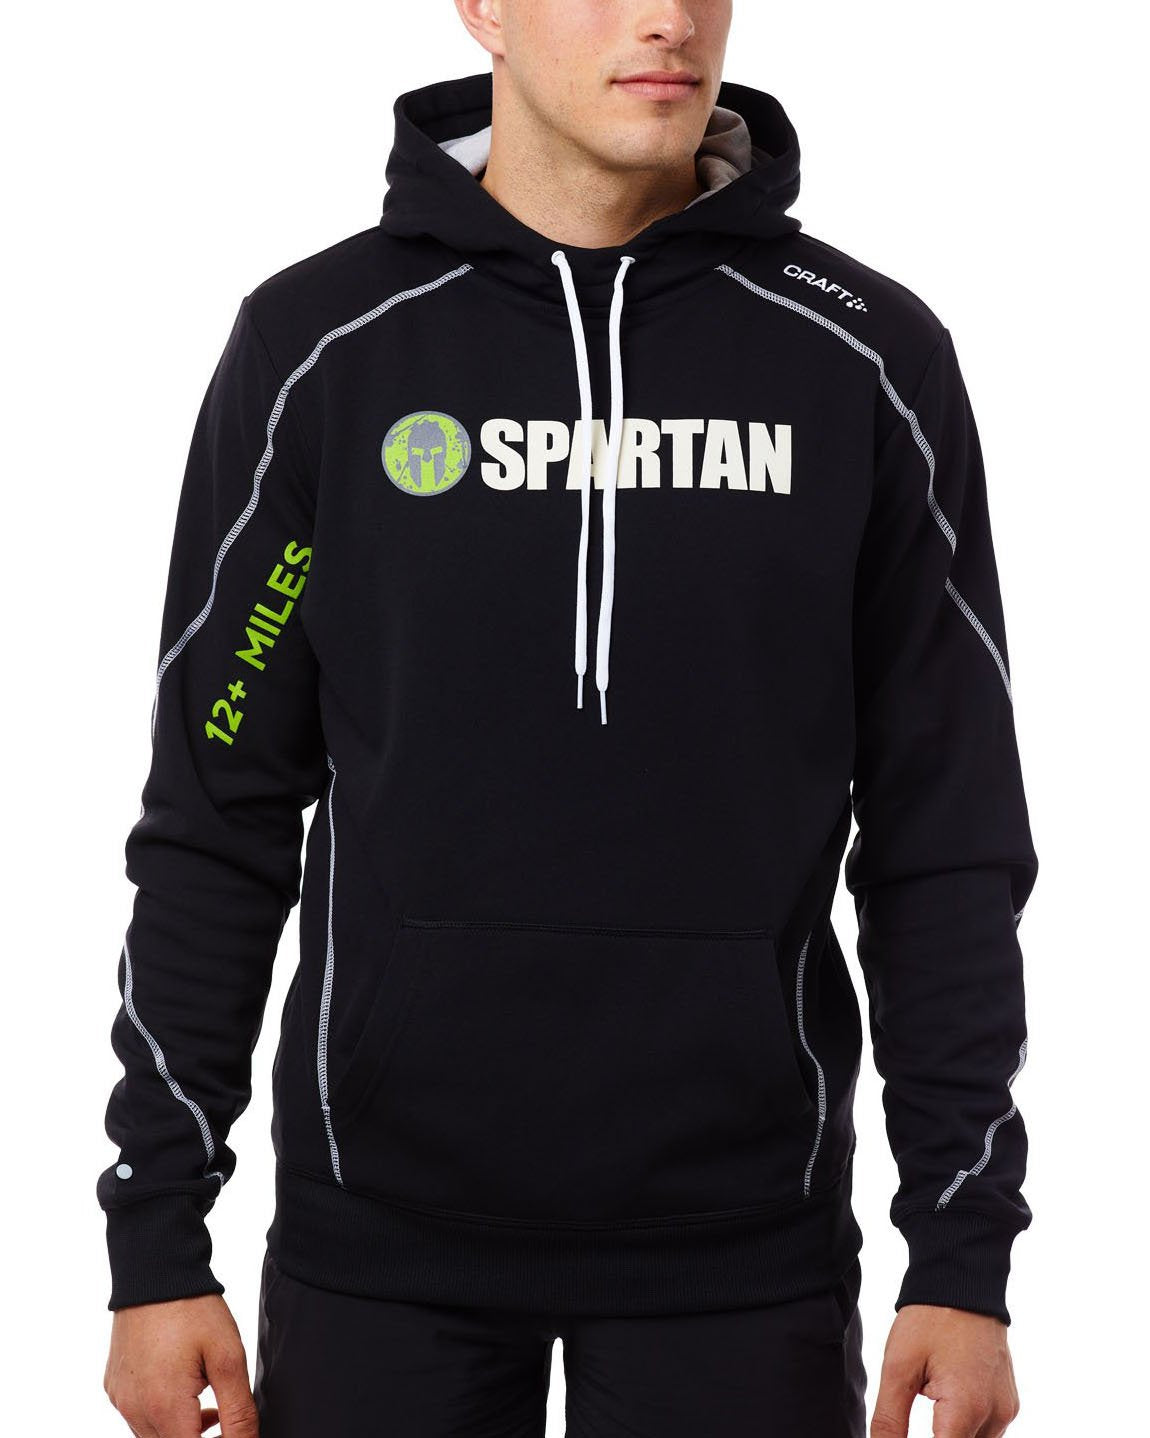 CRAFT SPARTAN By CRAFT Beast Hoodie - Men's Black S